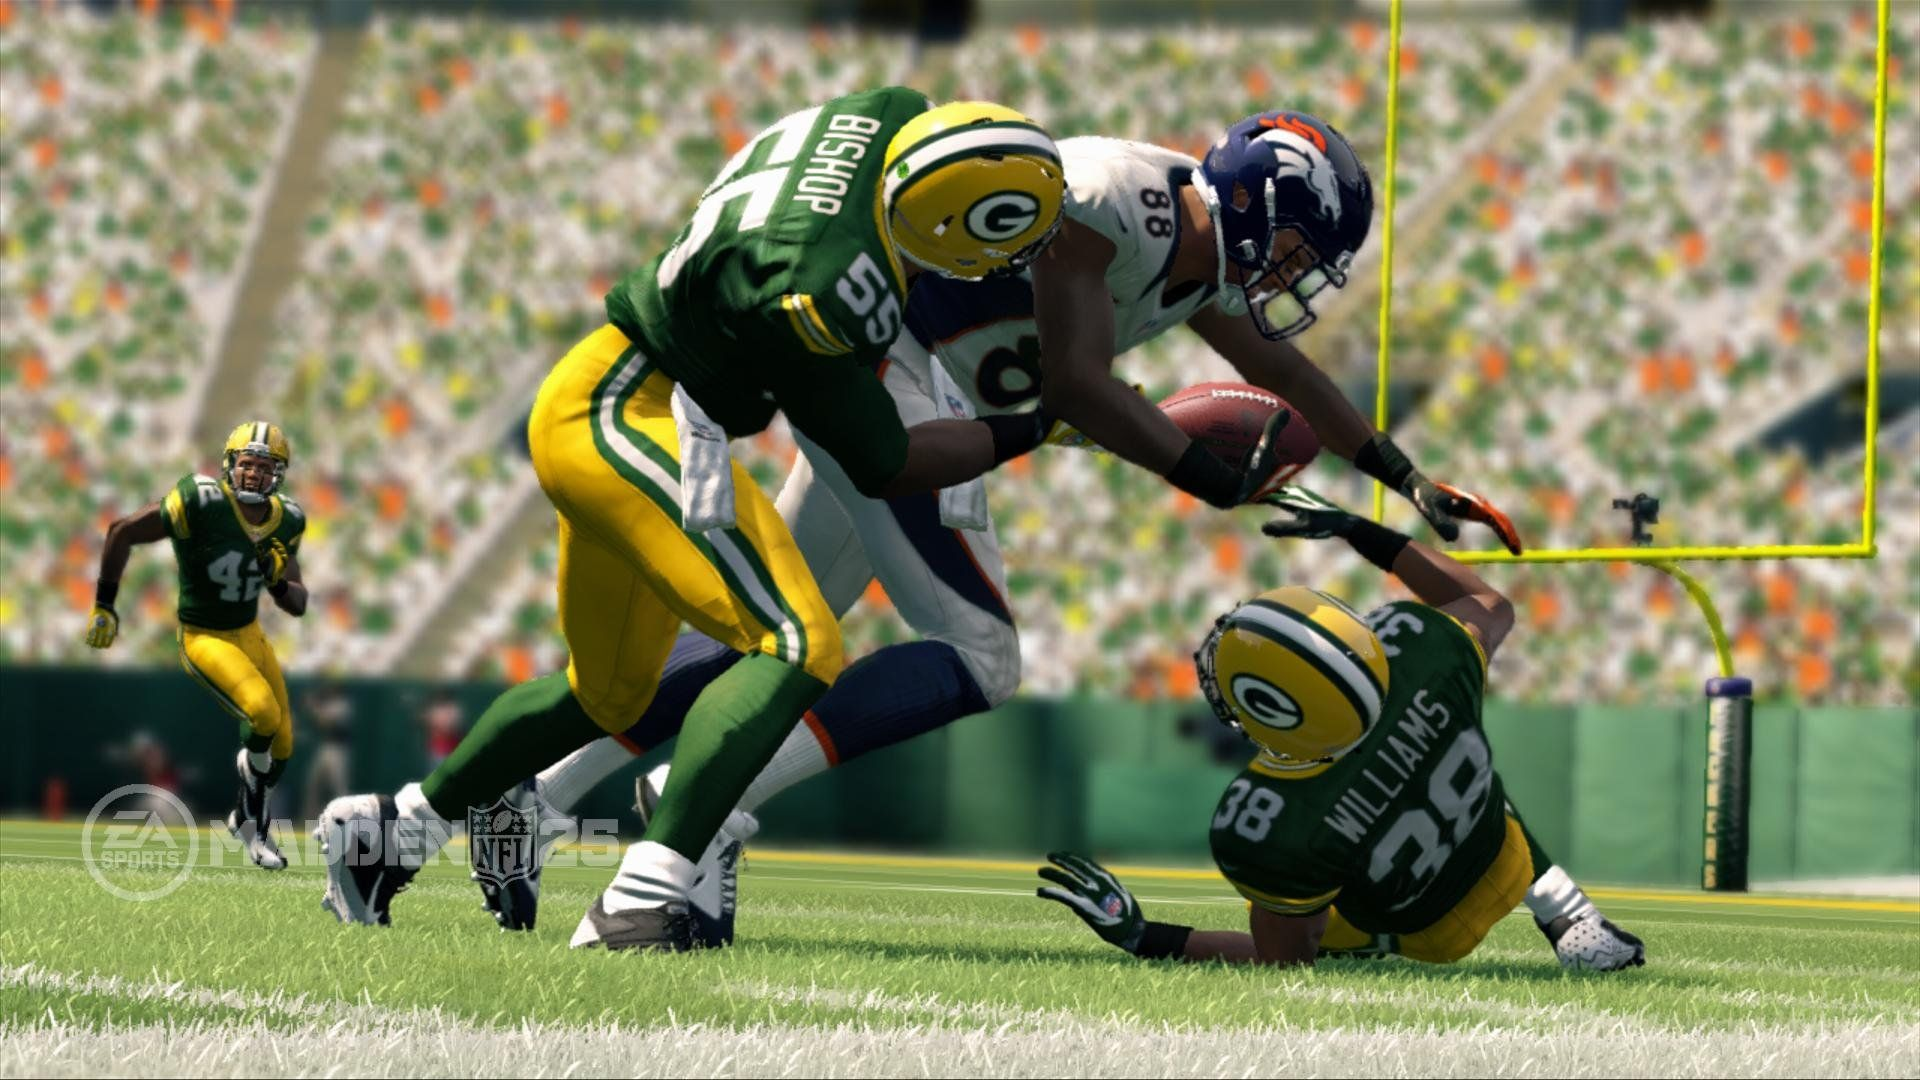 Madden Nfl 25 Xbox 360 You Can Find Out More Details At